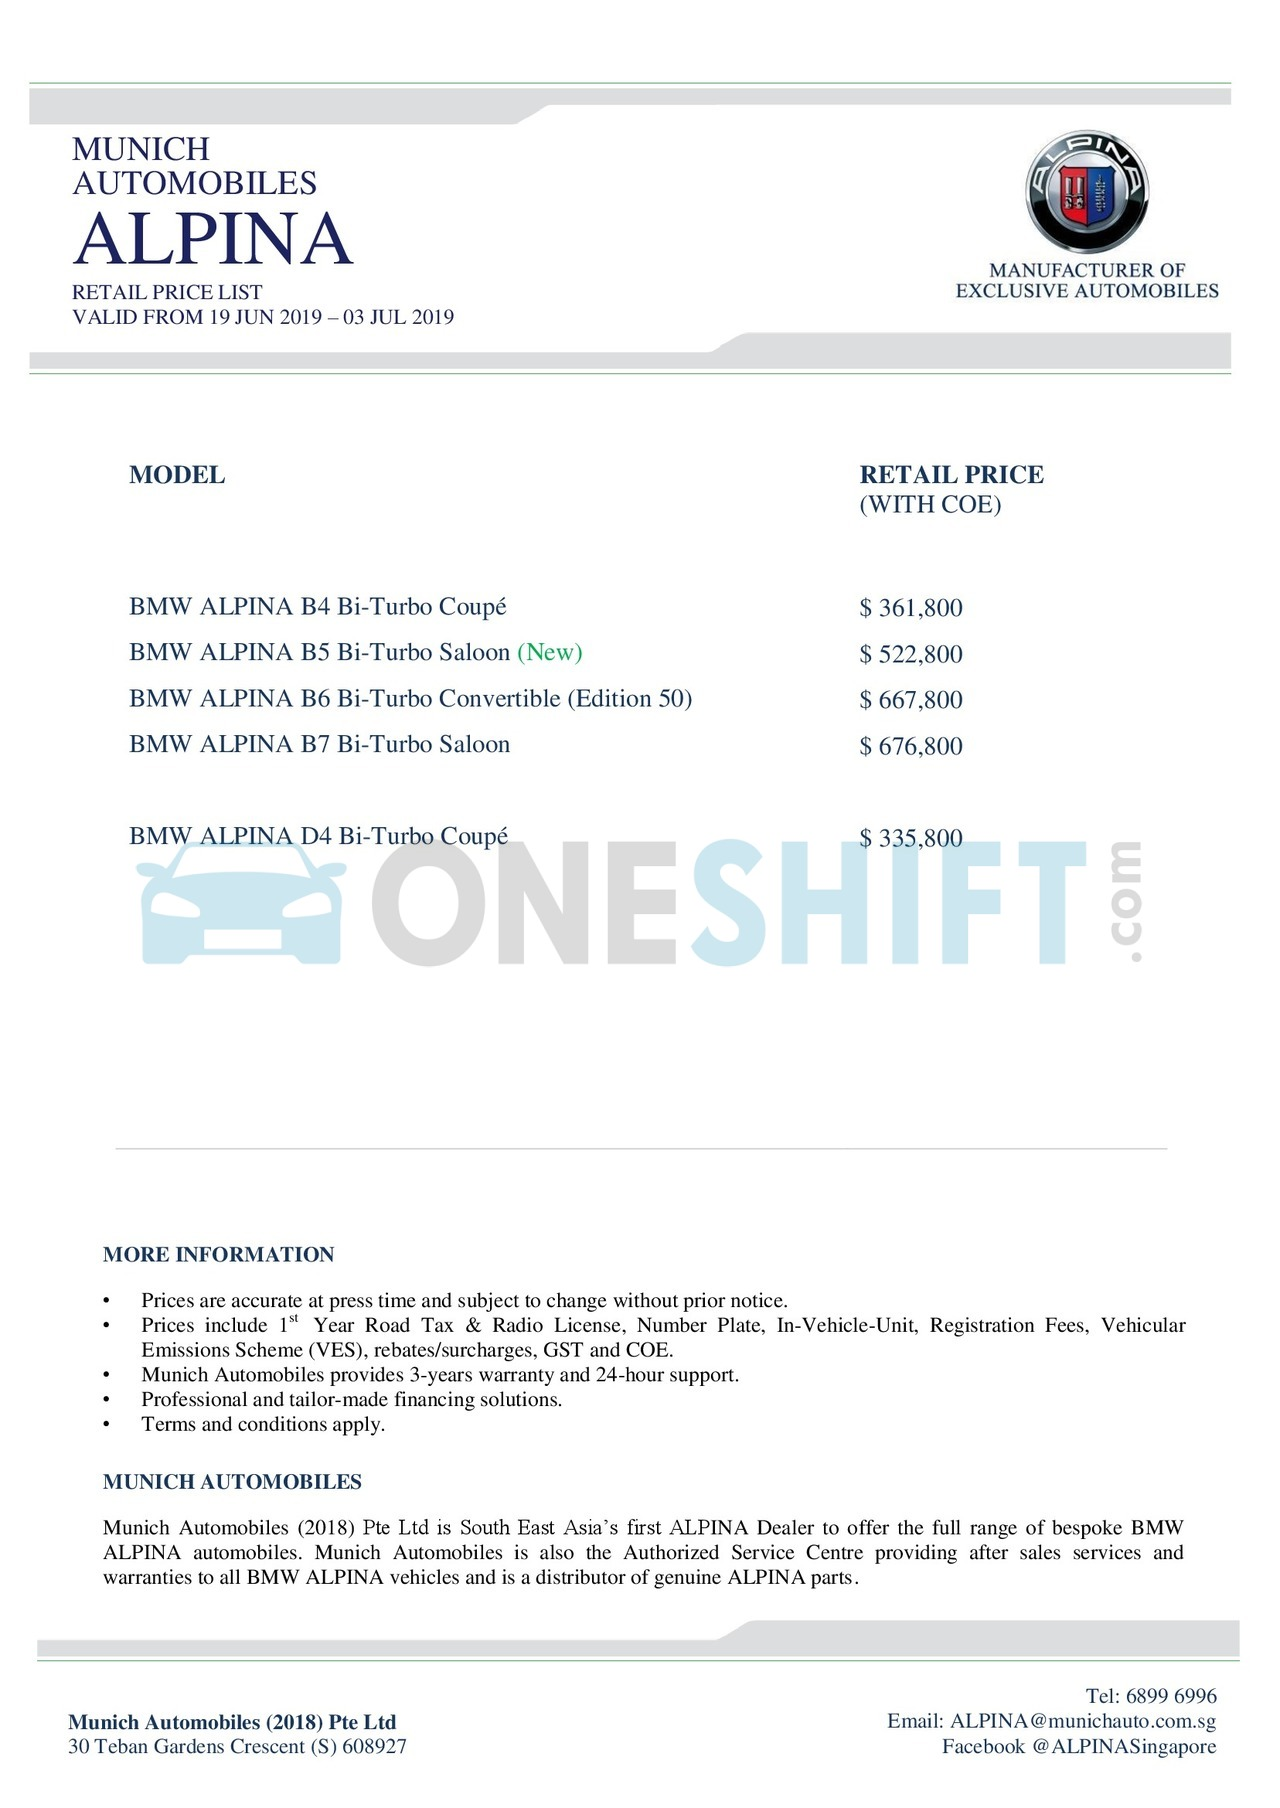 bmw-alpina Price List 6-20-2019 Page 1